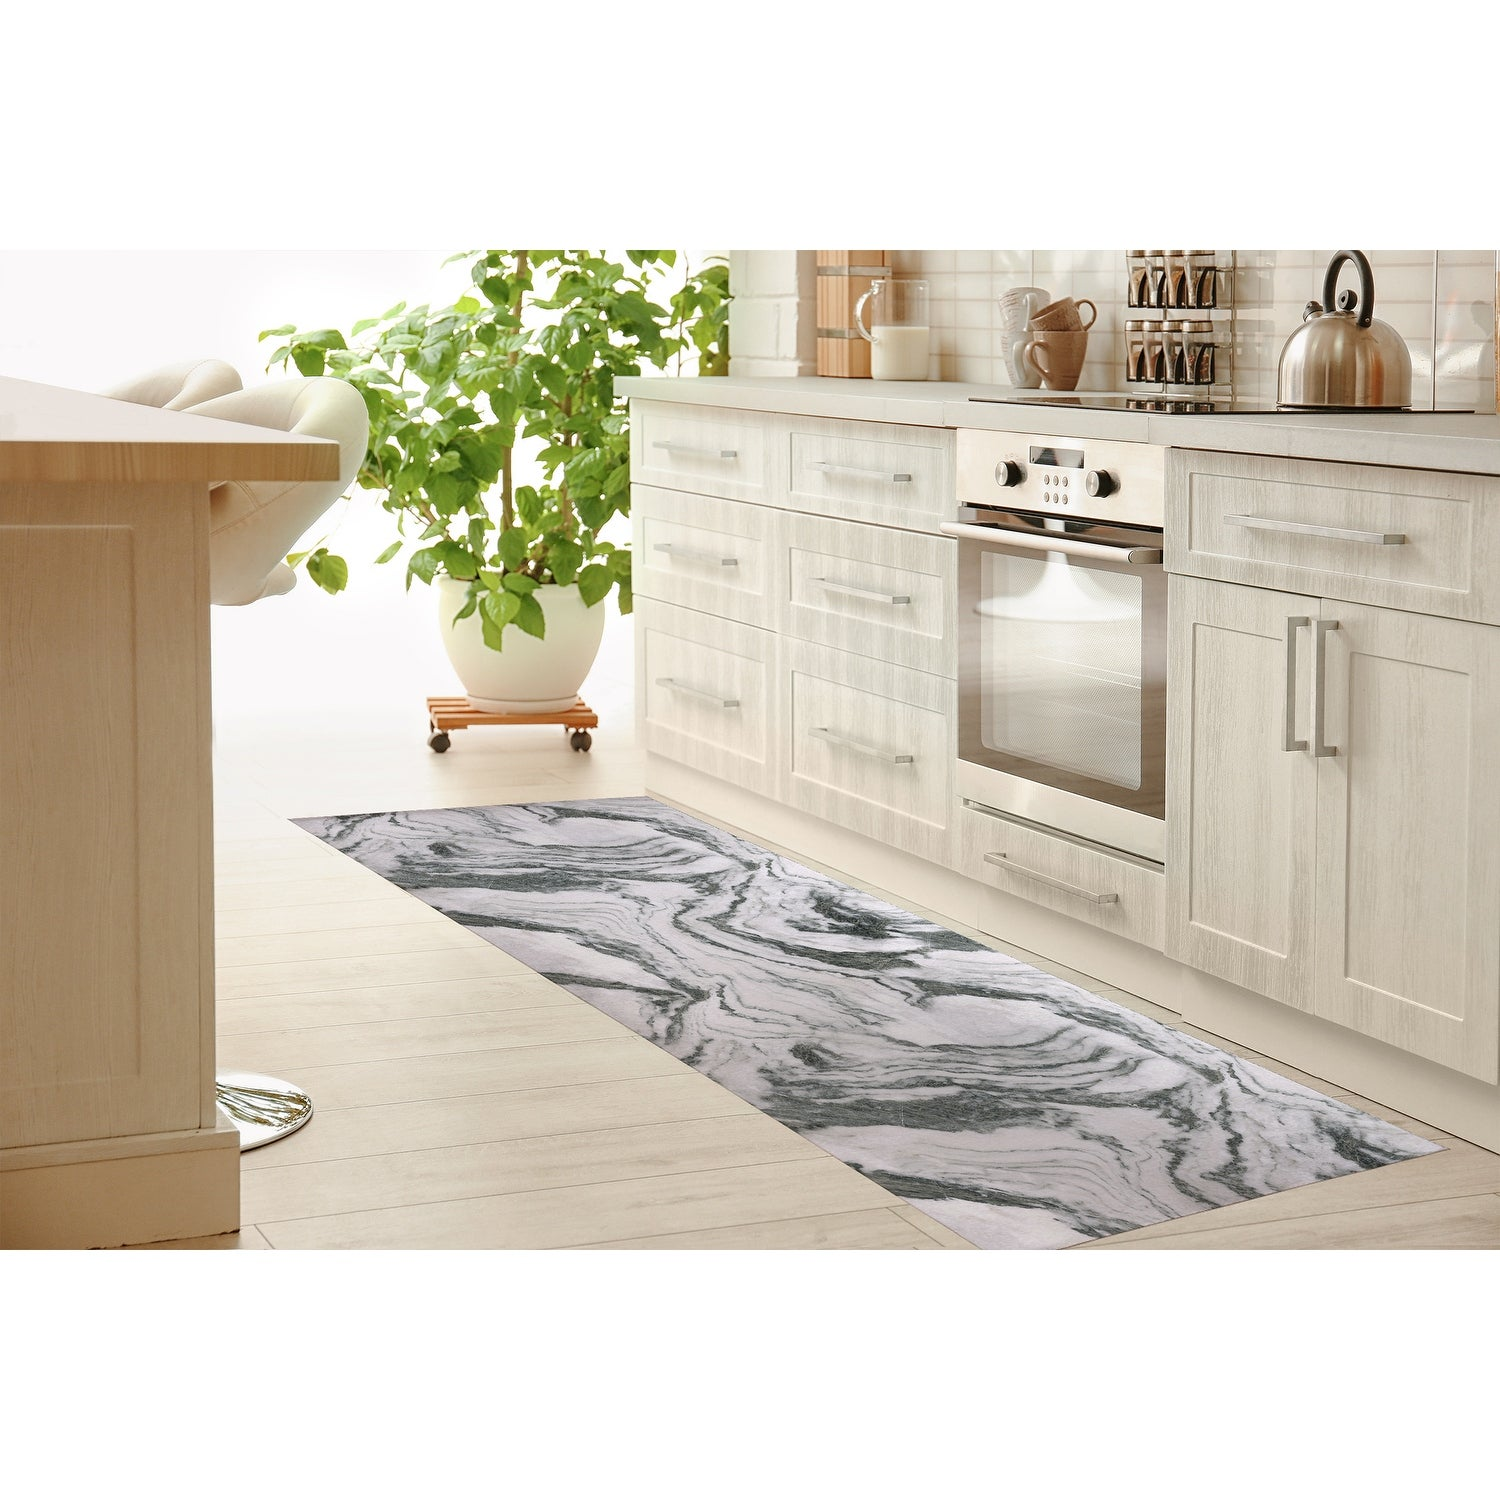 Marble Kitchen Mat By Kavka Designs On Sale Overstock 30586513